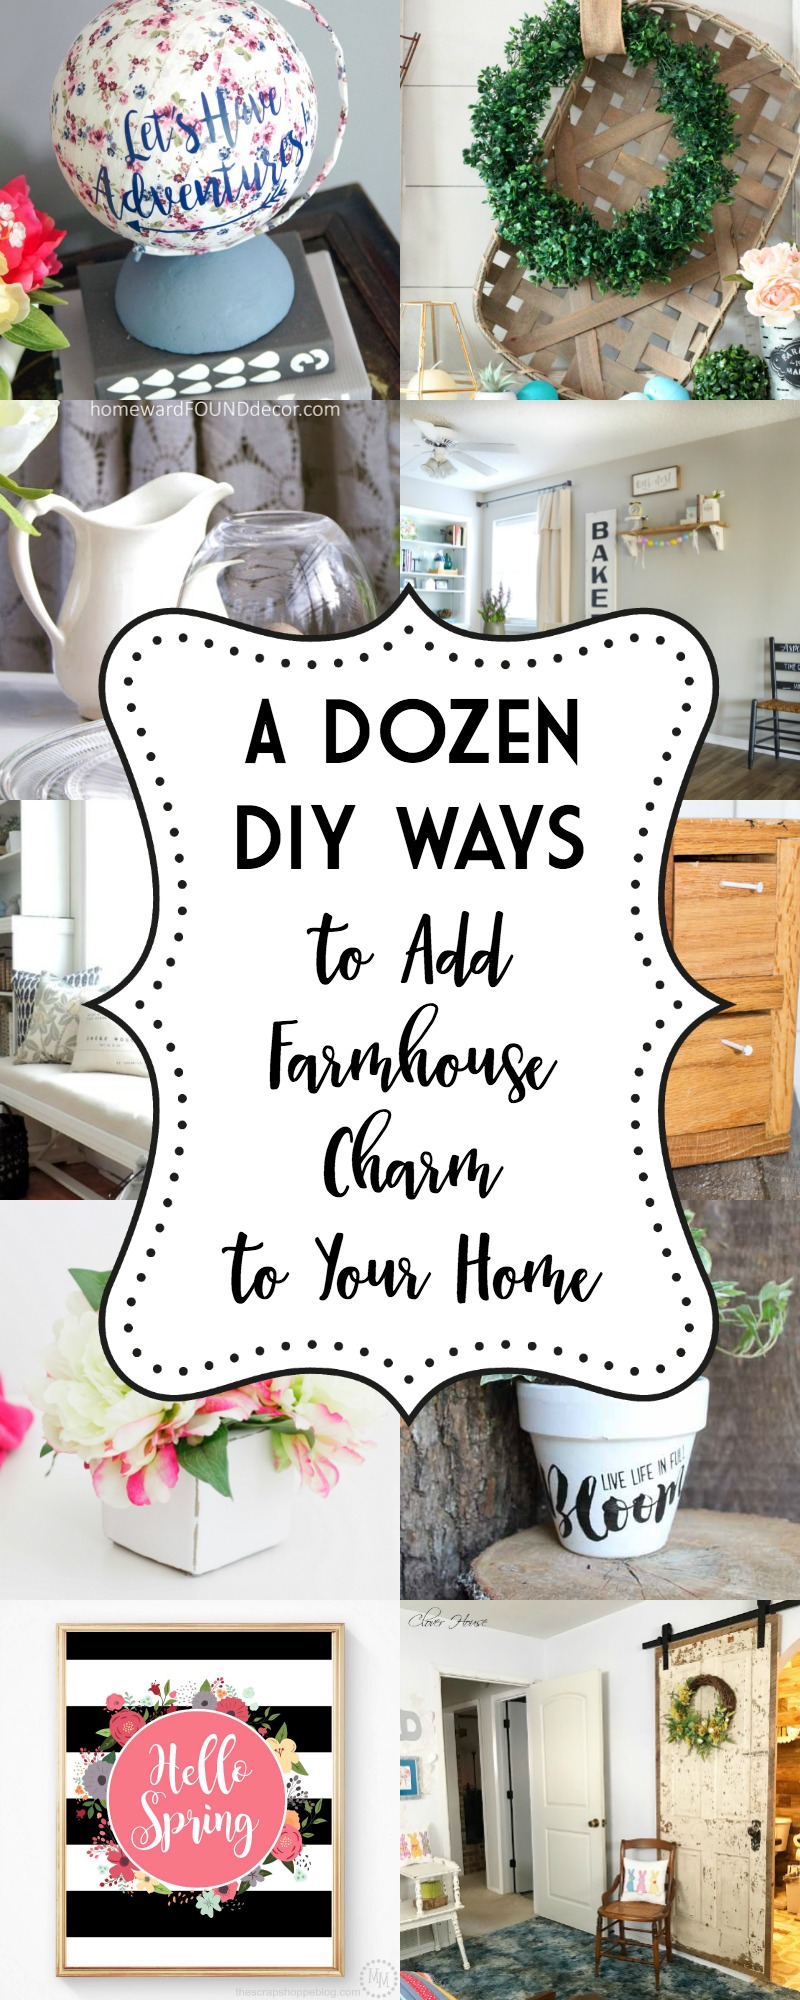 A Dozen Ways to Add Farmhouse Charm to Your Home